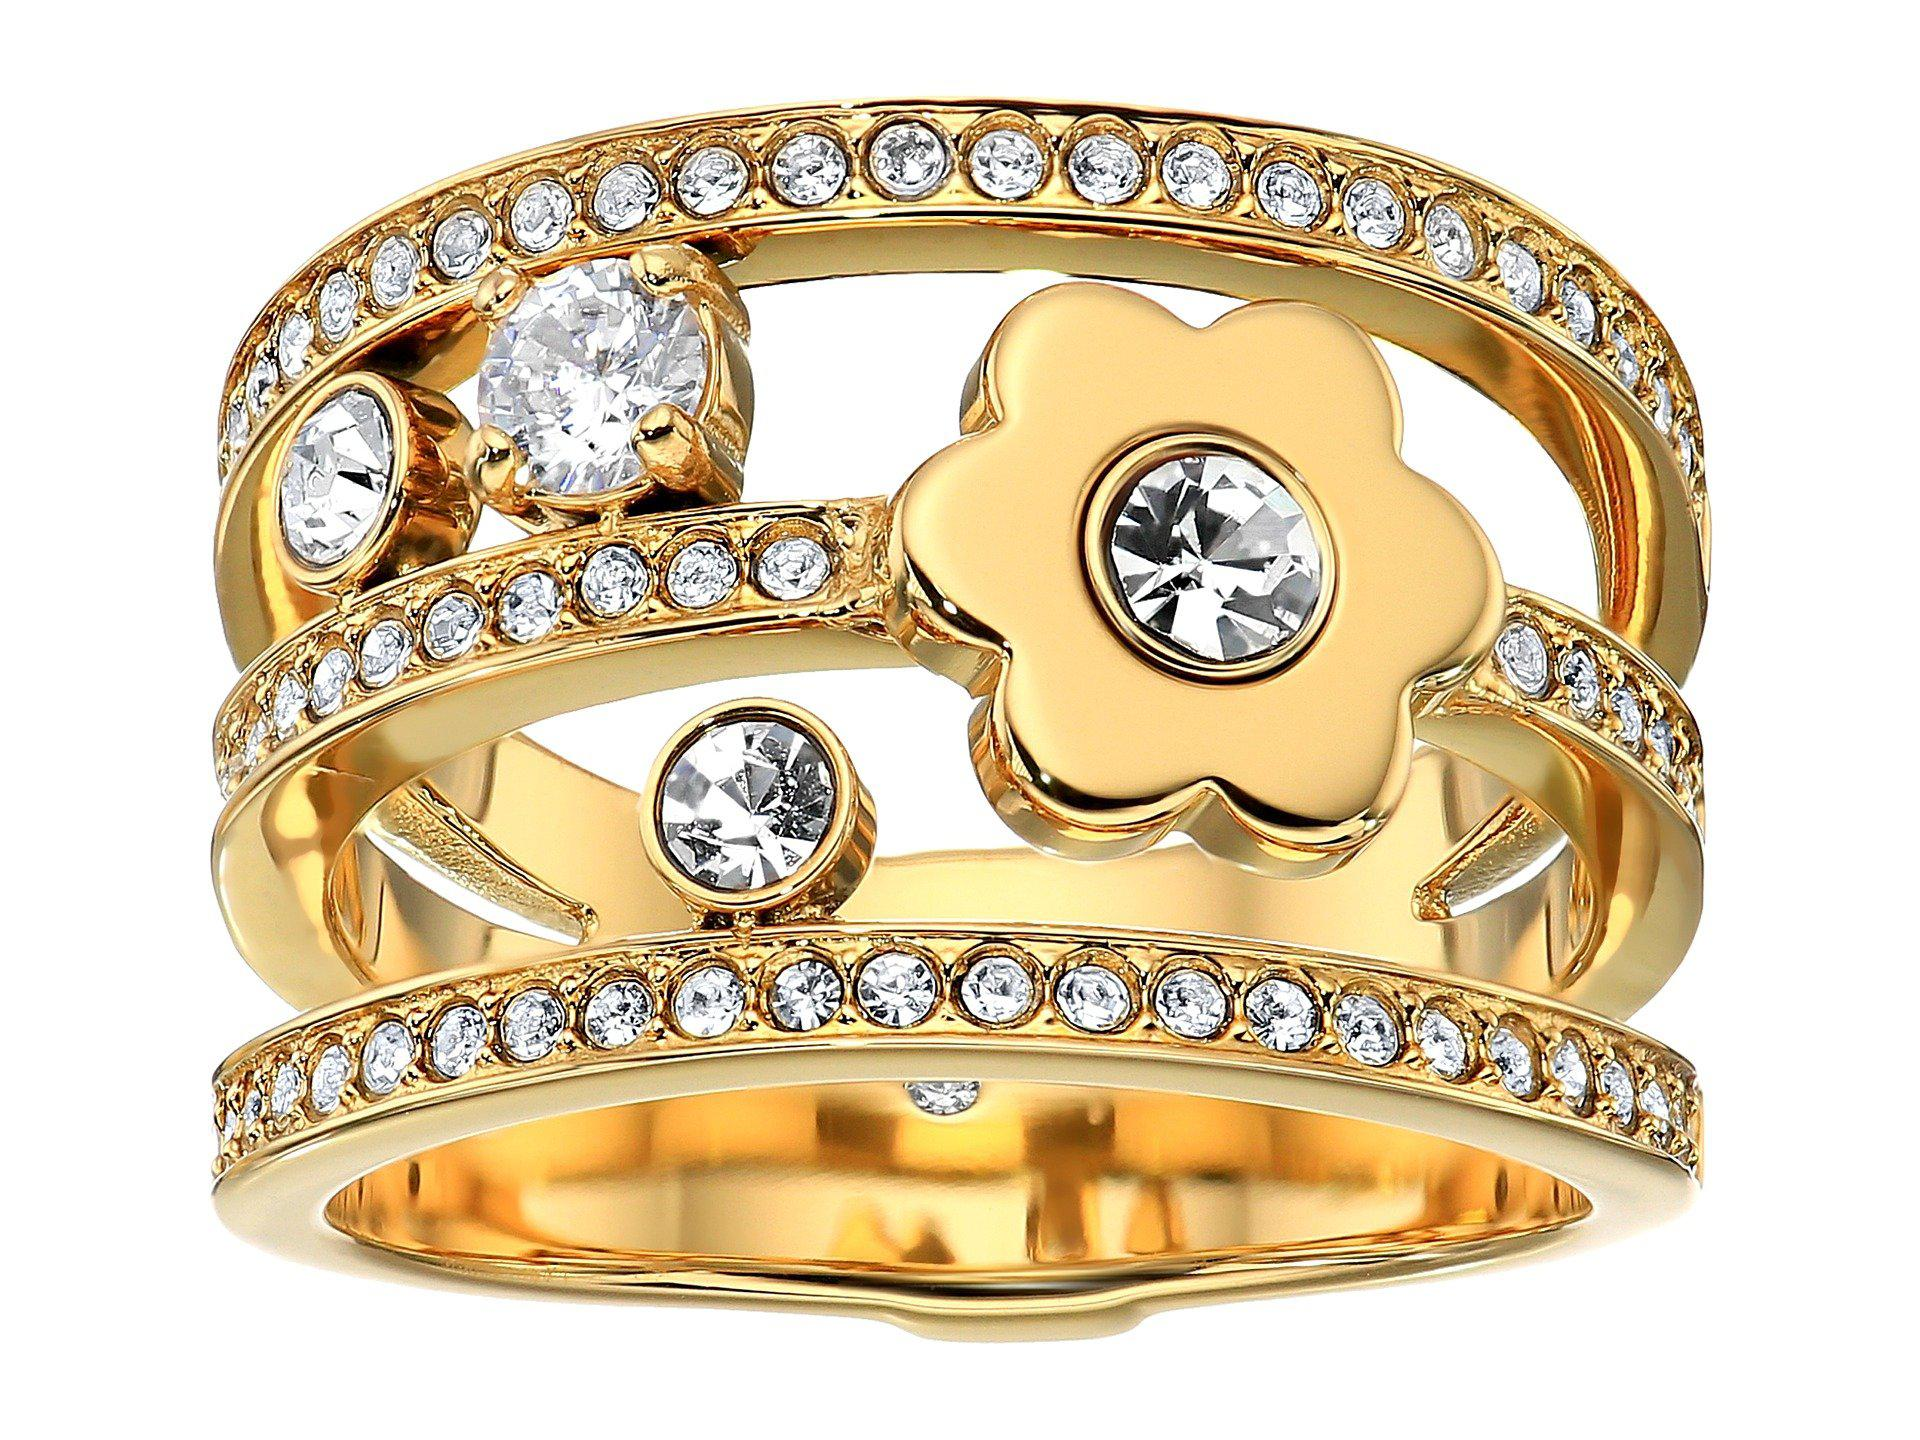 Michael Kors In Full Bloom Floral and Crystal Accent Stacked Ring (Rose Gold) Ring WRiAq9VlYw